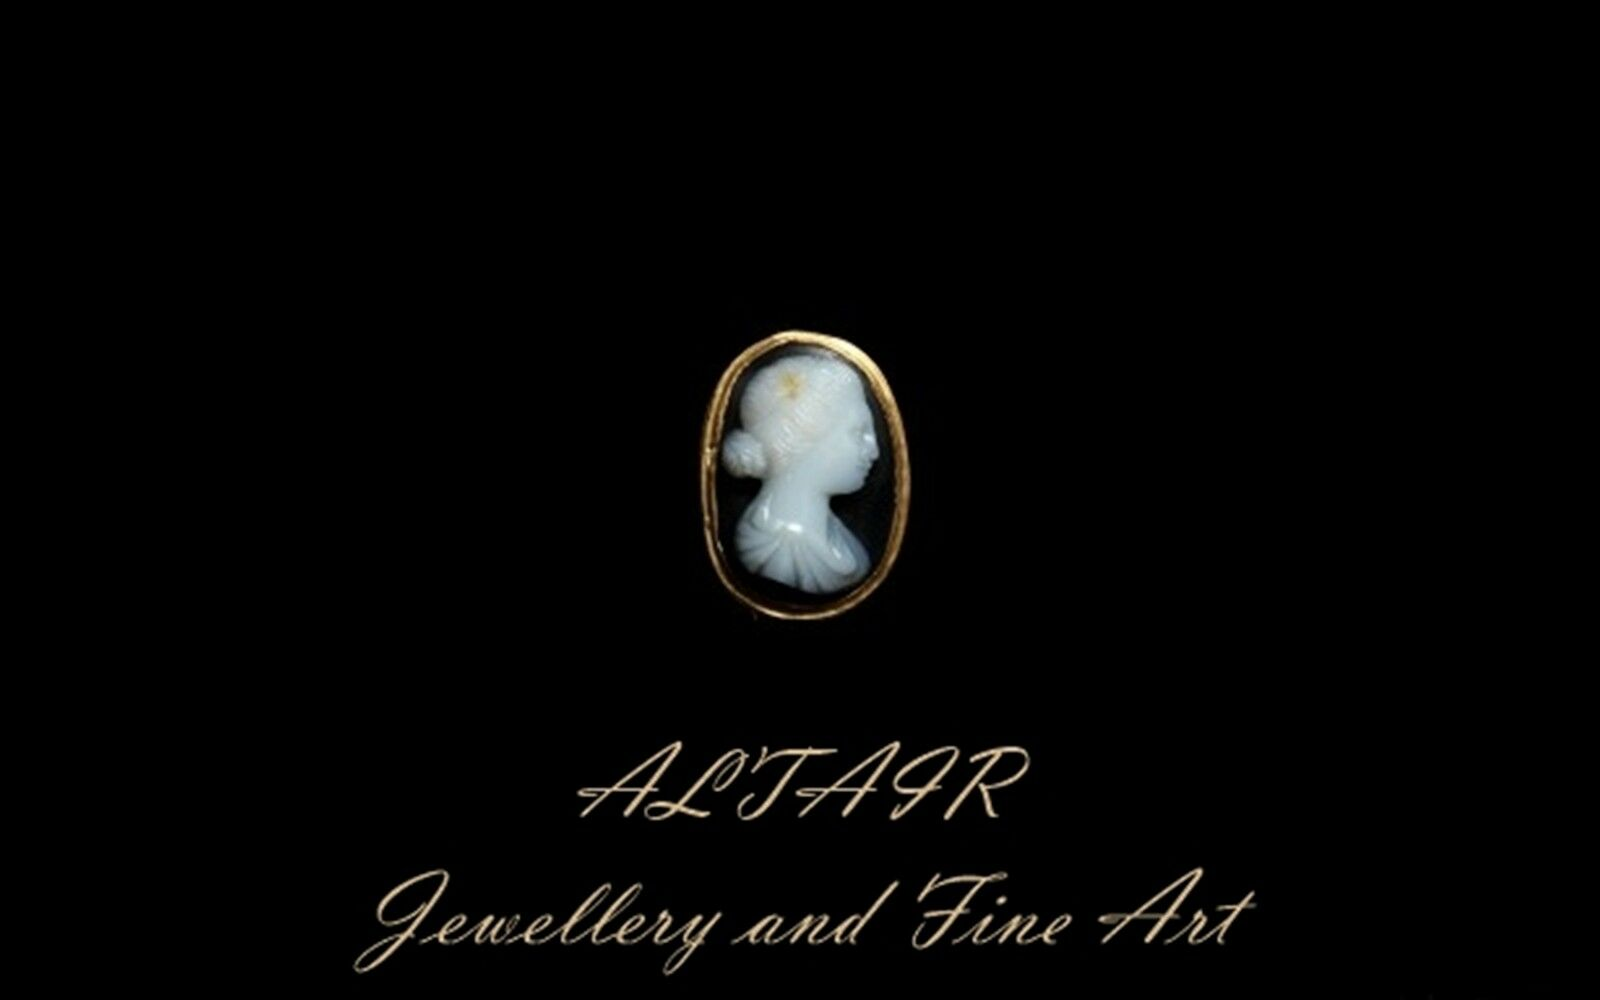 Altair Jewellery and Fine Art